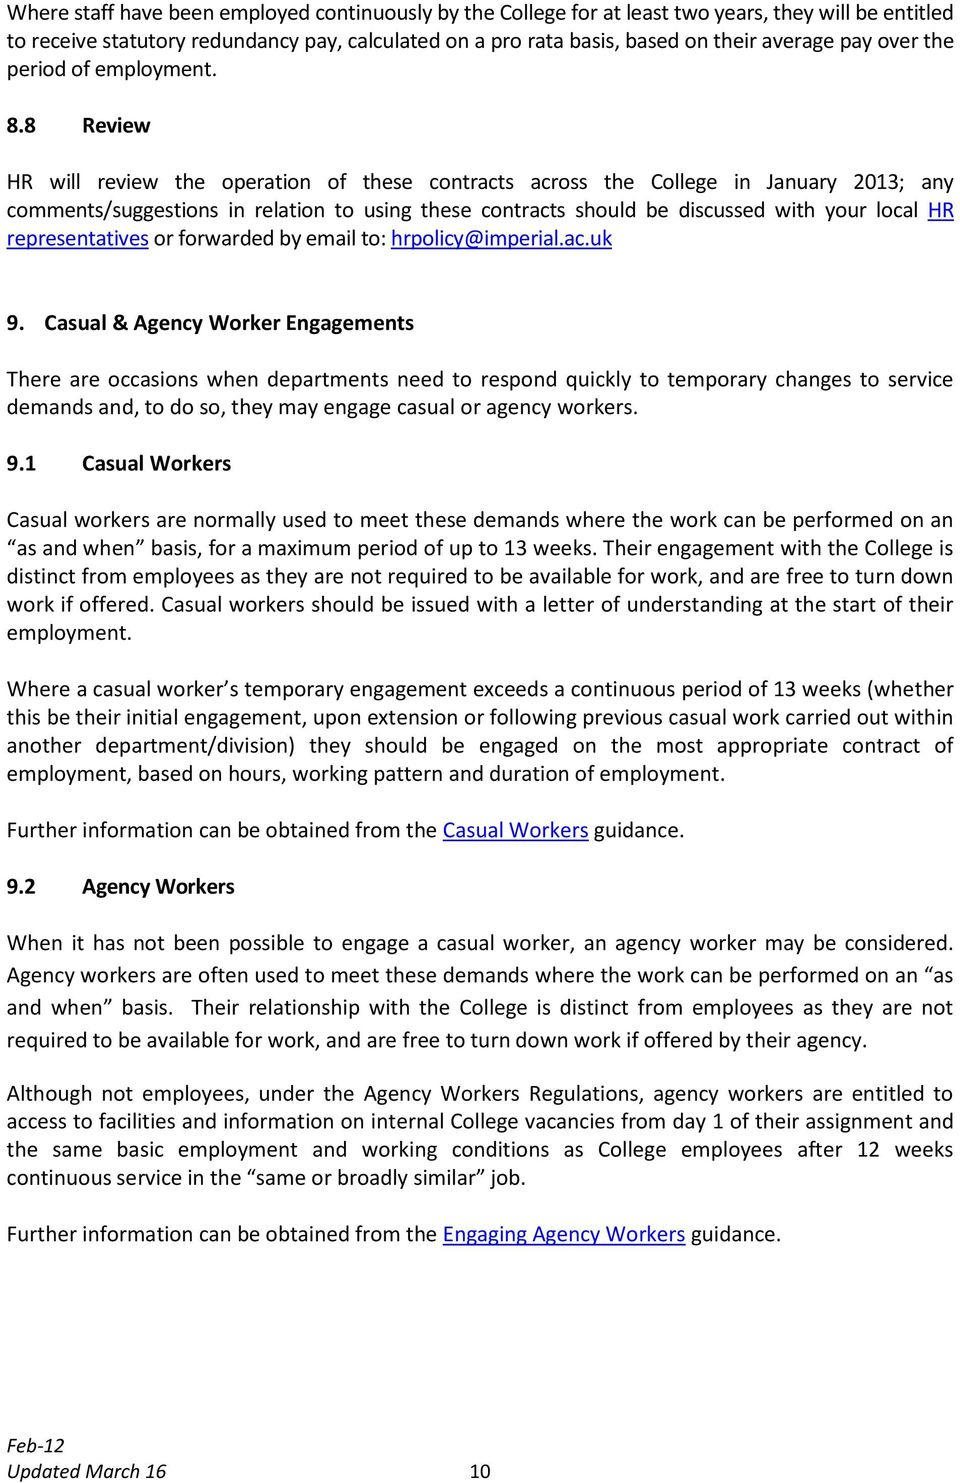 8 Review HR will review the operation of these contracts across the College in January 2013; any comments/suggestions in relation to using these contracts should be discussed with your local HR